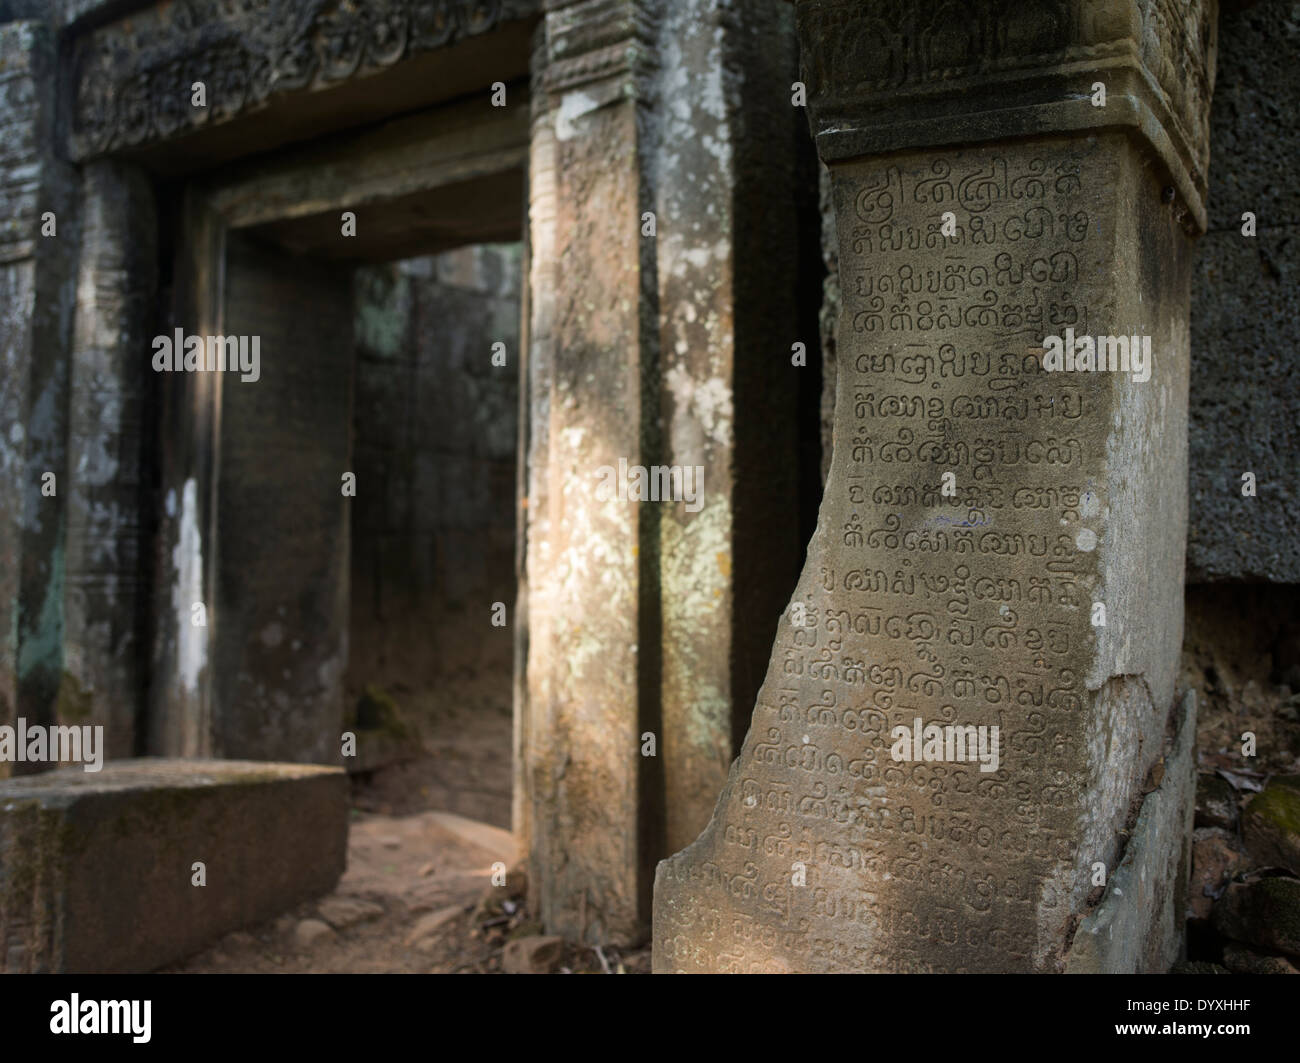 Writings etched into the stone at Prasat Kra Chap Temple part of Koh Ker 127 NE of Siem Reap, Cambodia - Stock Image